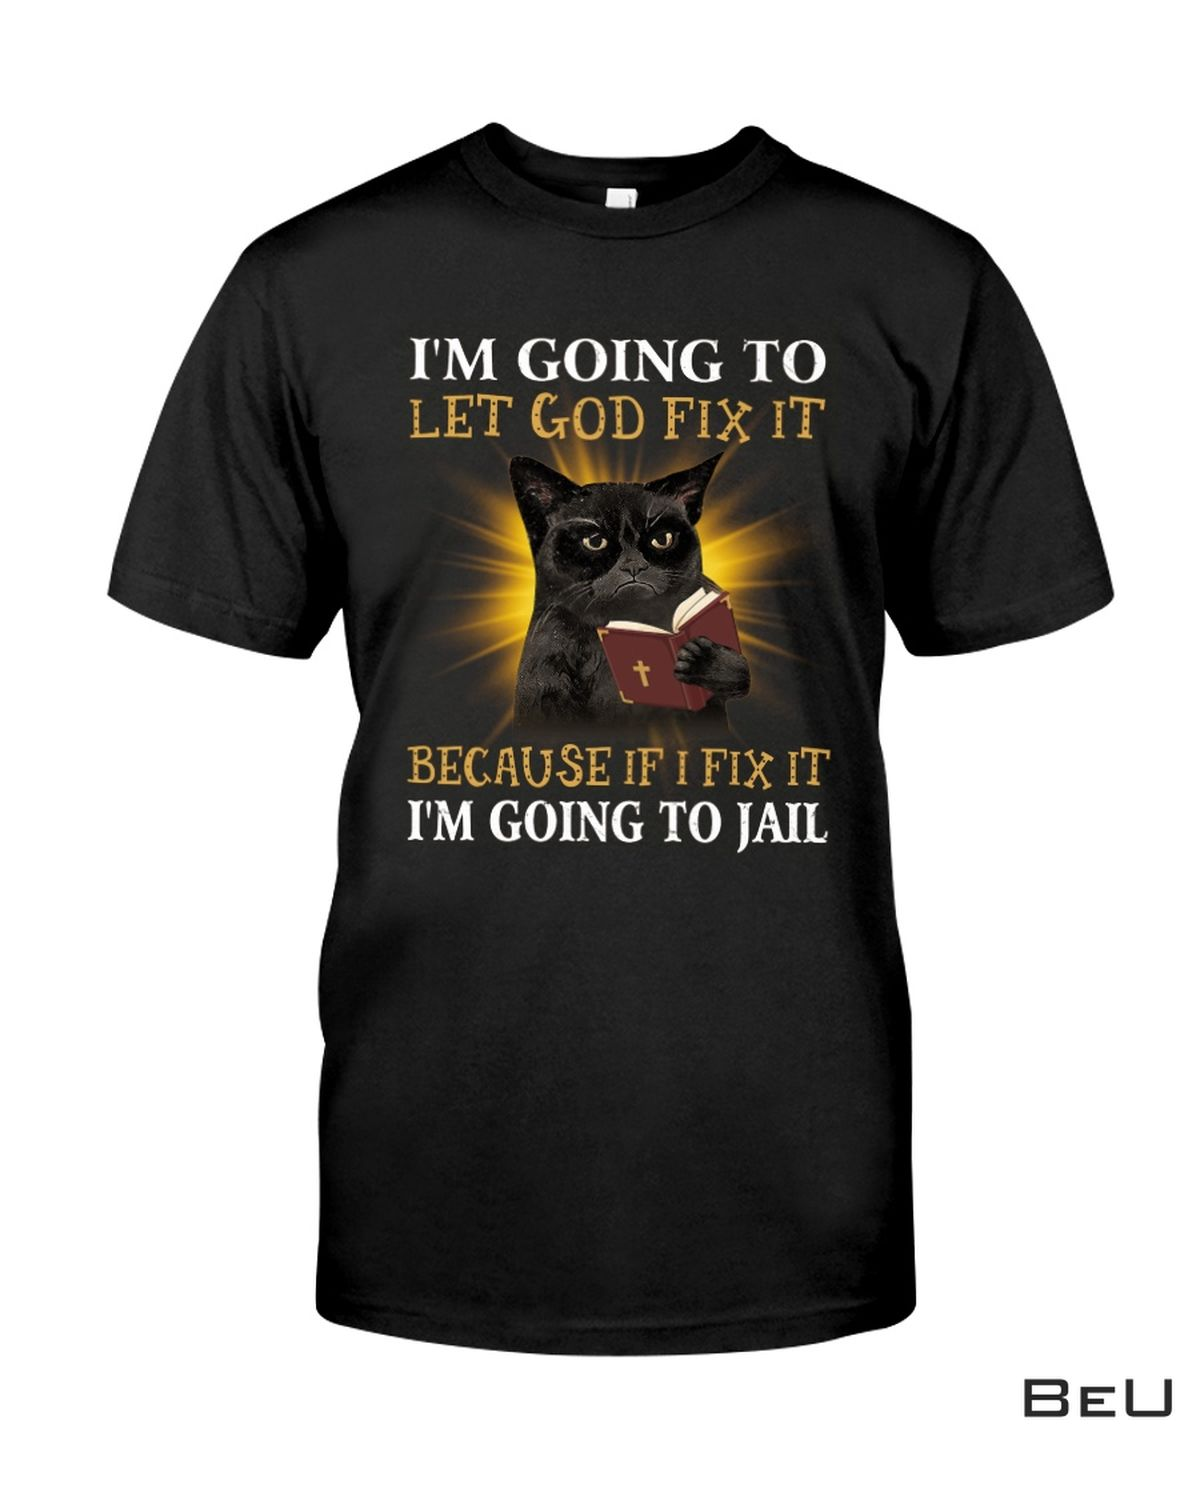 I'm Going To Let God Fix It Because If I Fix It I'm Going To Jail Shirt, hoodie, tank top